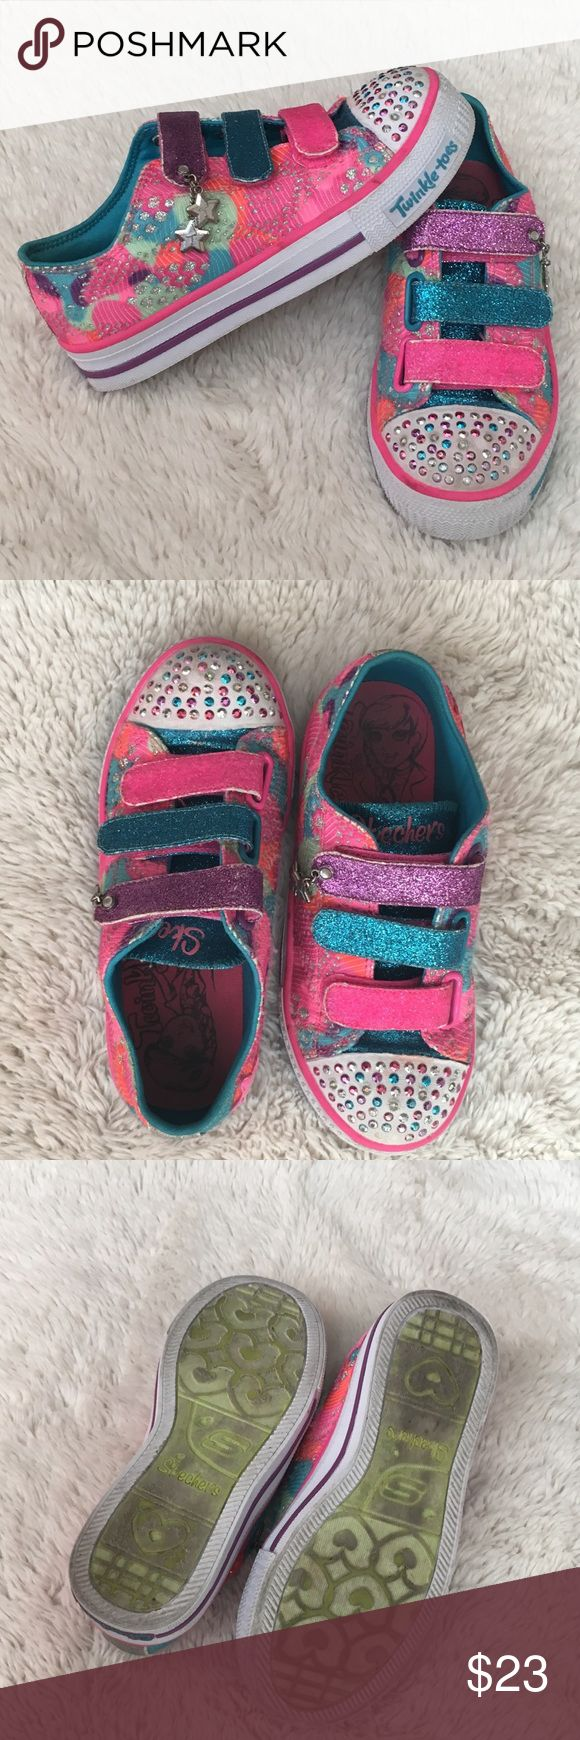 Twinkle Toe Skechers light up shoes for girls! Twinkle Toe Skechers light up shoes for girls! Size 13. Only worn a few times. A few rhinestones are missing other than that they are in very good condition! Skechers Shoes Sneakers